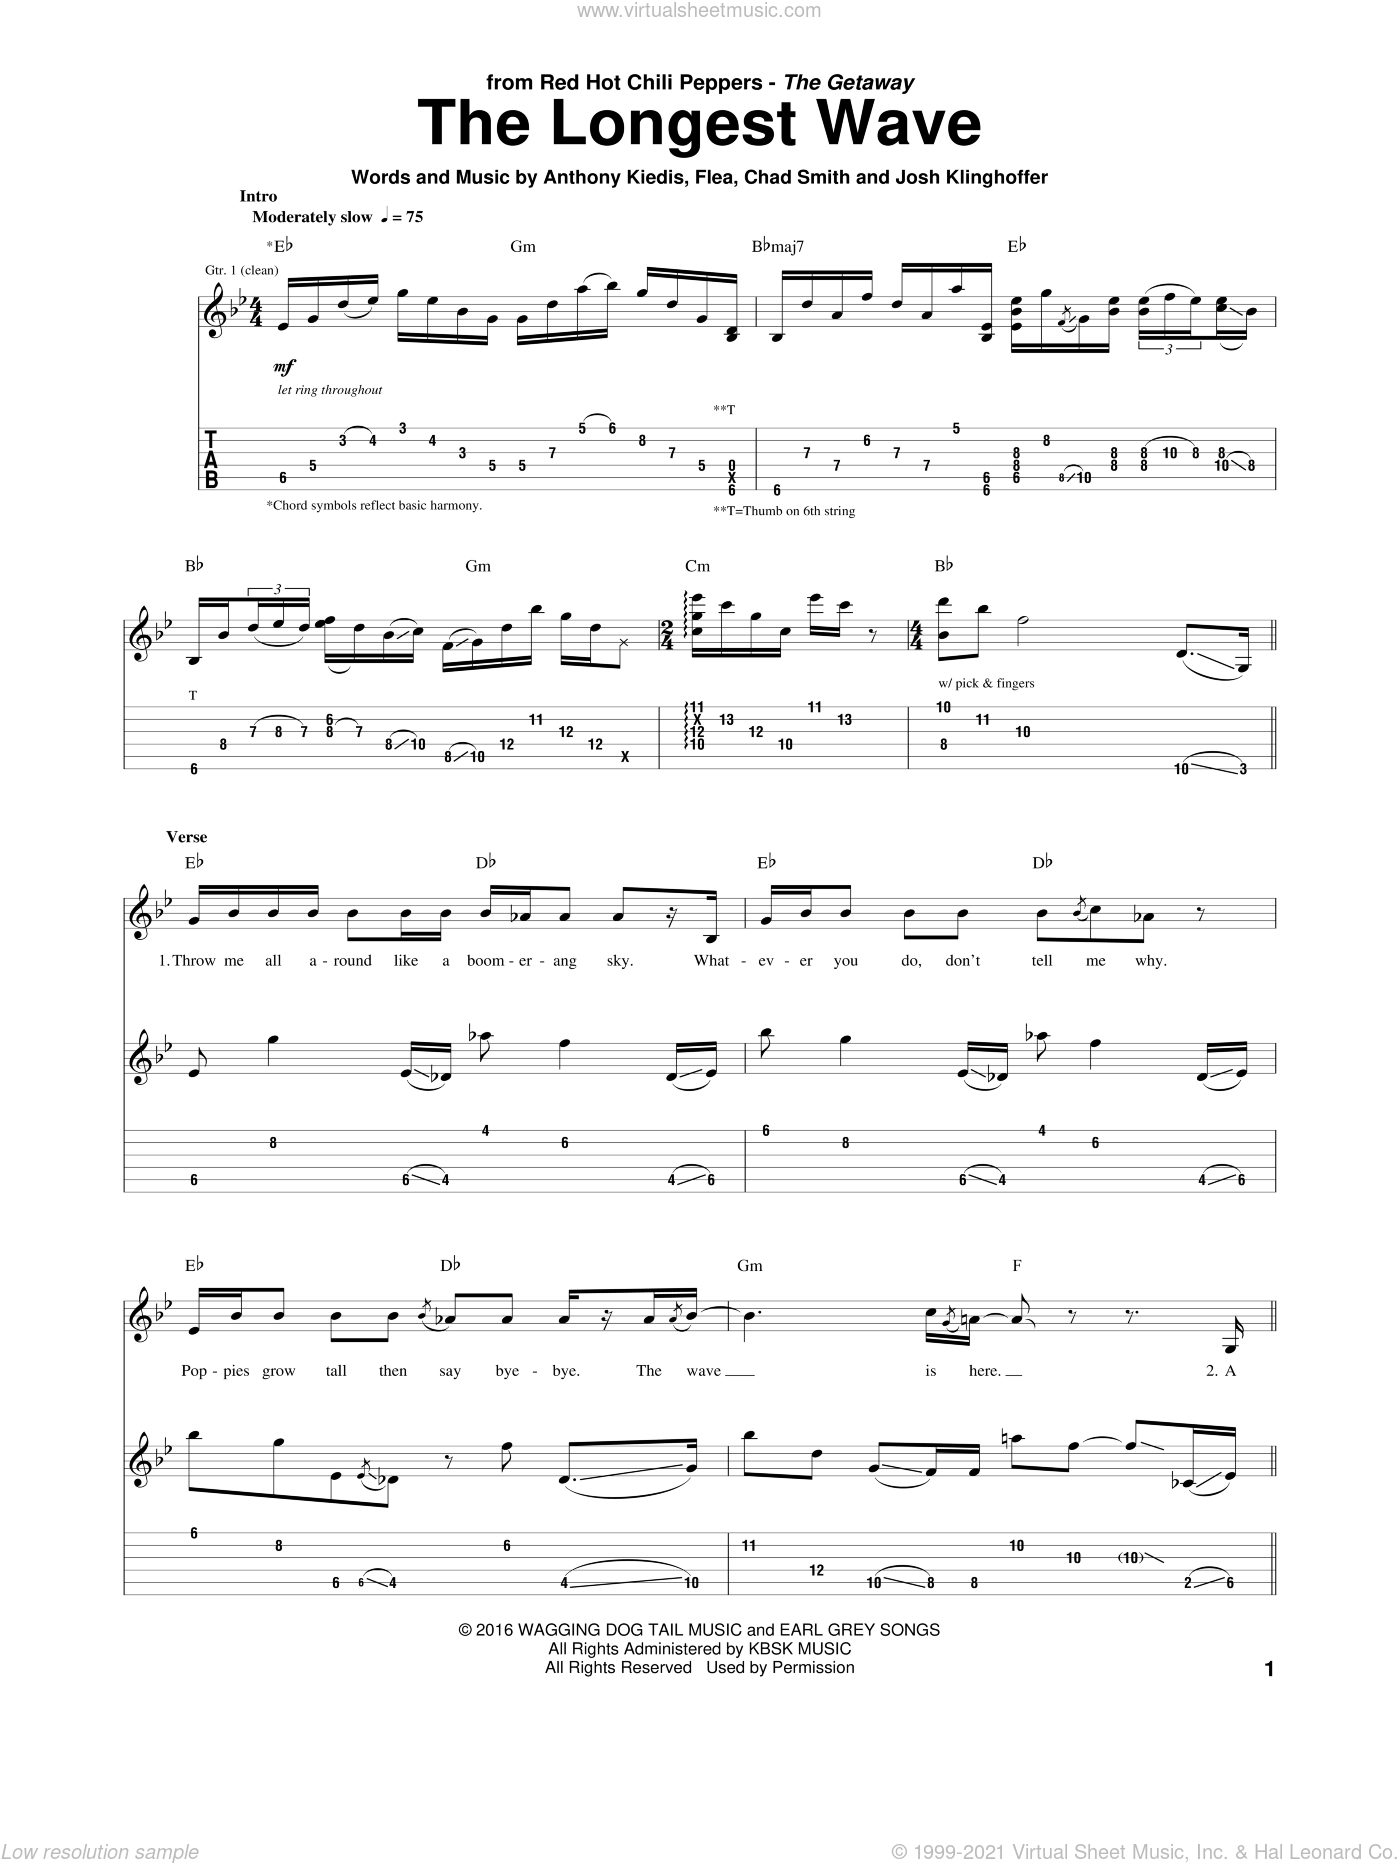 The Longest Wave sheet music for guitar (tablature) by Red Hot Chili Peppers, Anthony Kiedis, Chad Smith, Flea and Josh Klinghoffer, intermediate skill level